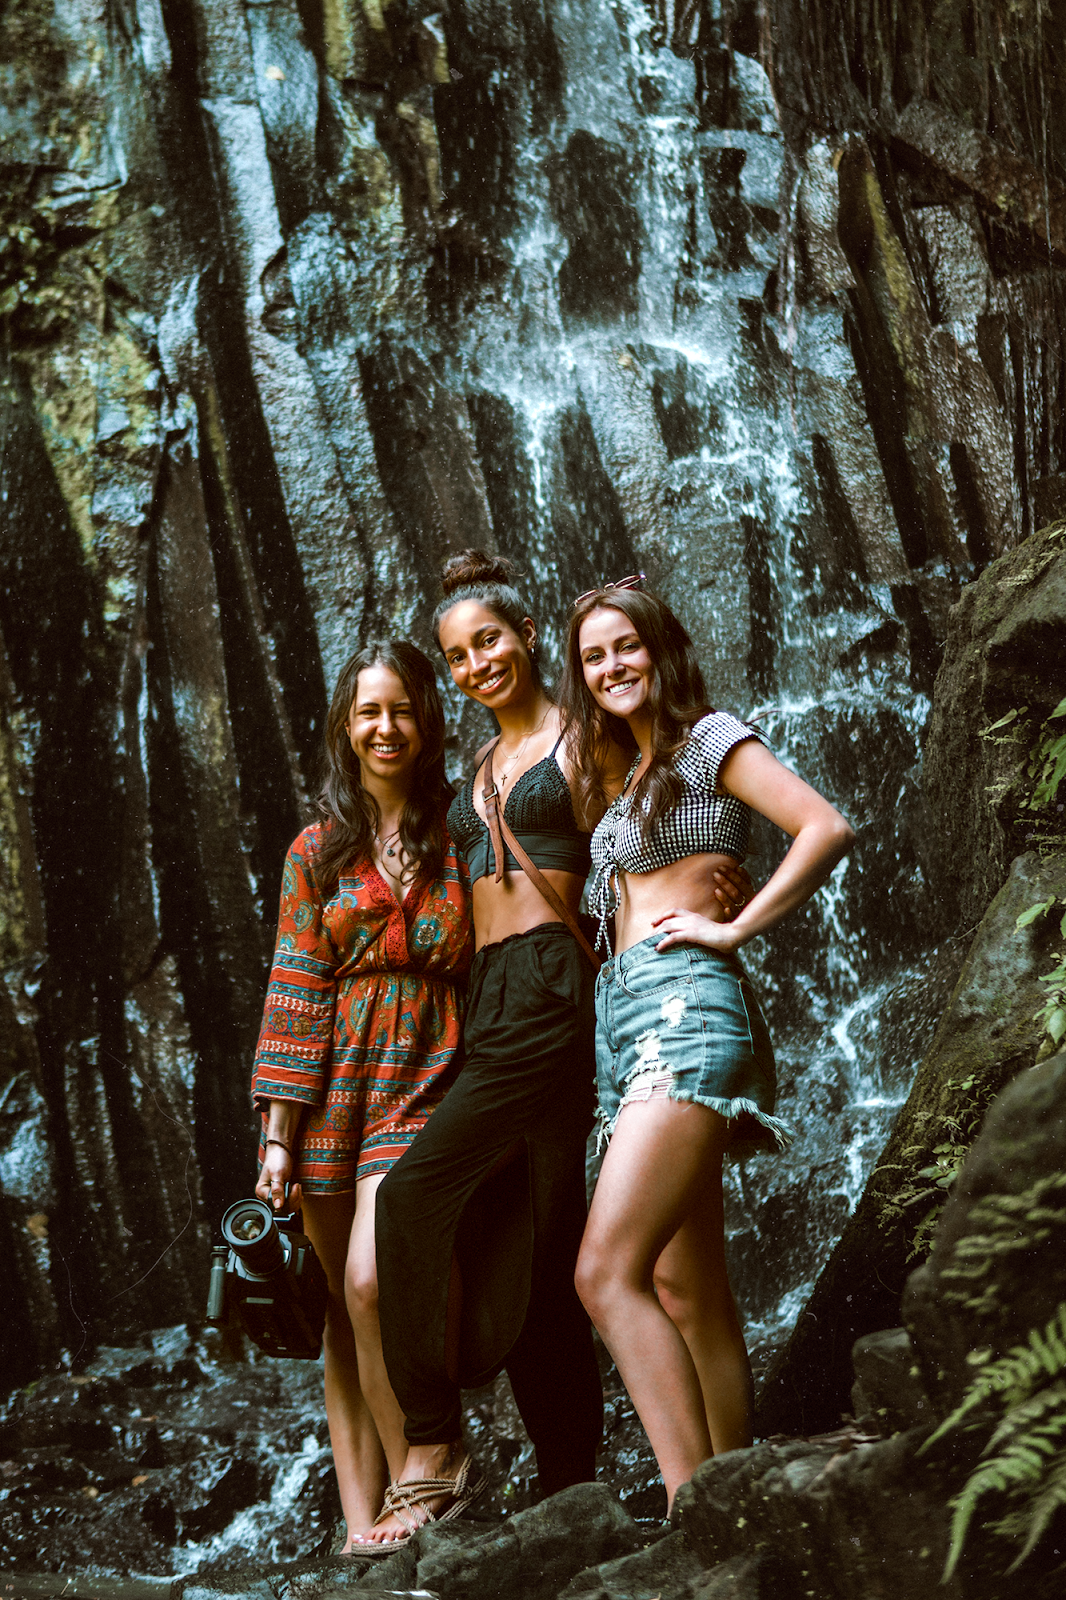 Shelly Stuckman, ArizonaGirl.com, how to style bohemian, fashion blogger, travel blog, Charlotte Russe, Bali, Indonesia, waterfall, waterfalls, BFFs